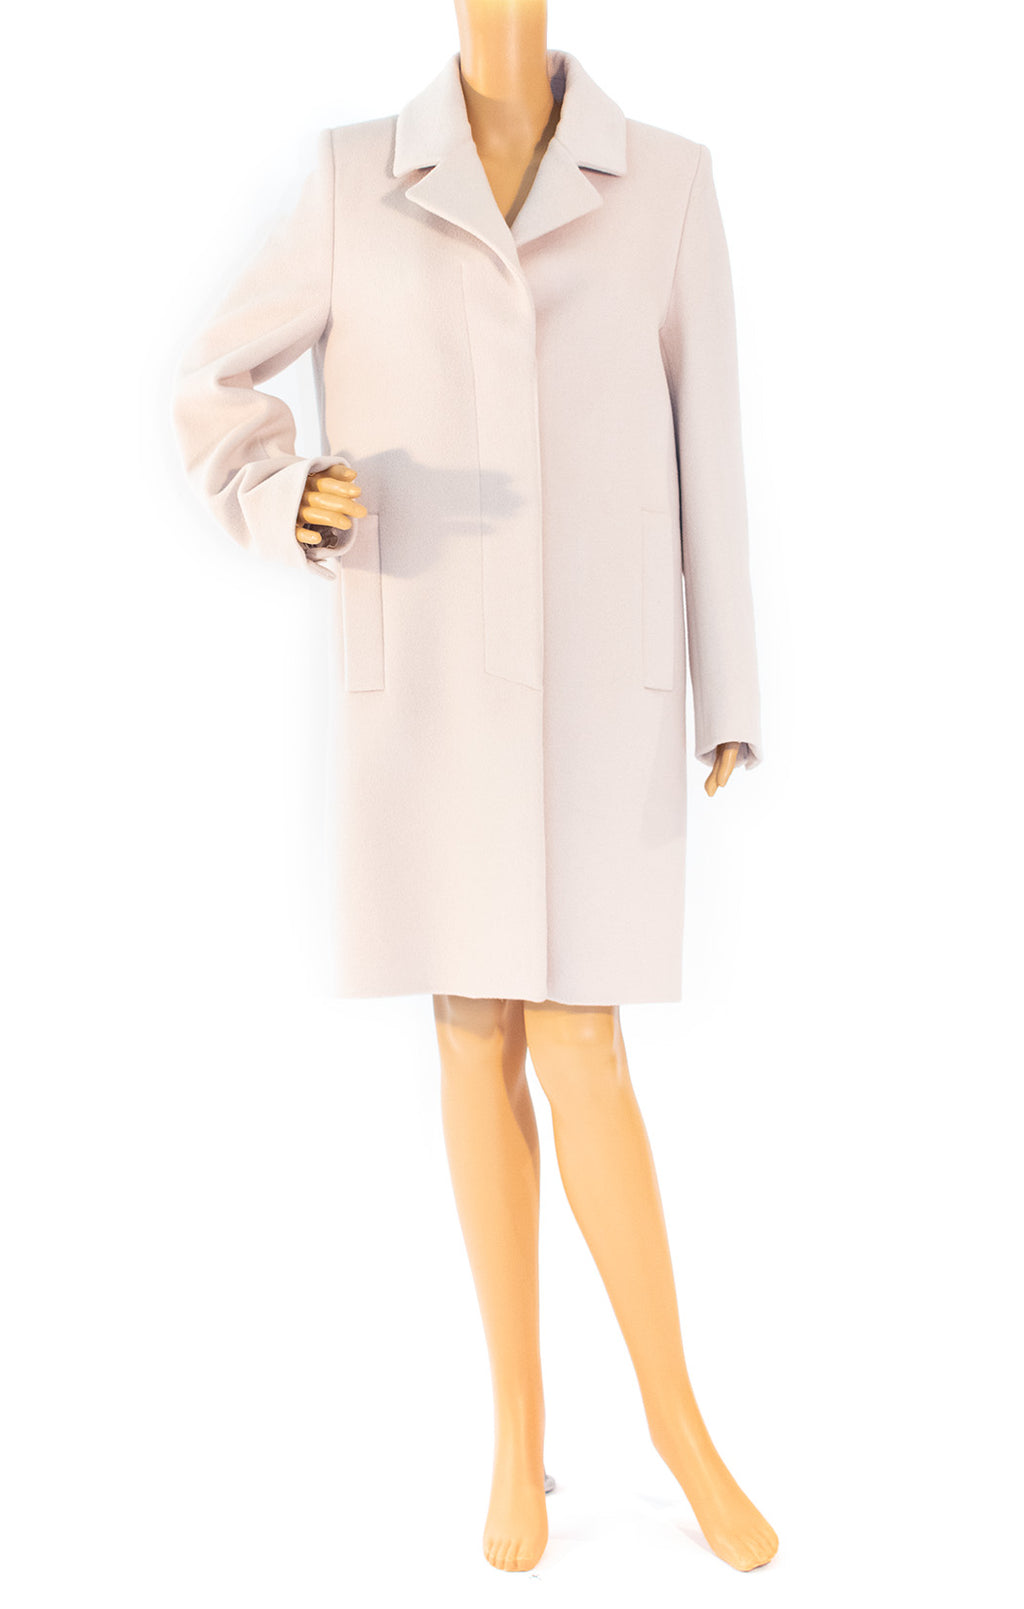 Front view of MAISON MARTIN MARGIELA Coat Size: IT 40 (comparable to US 4-6)